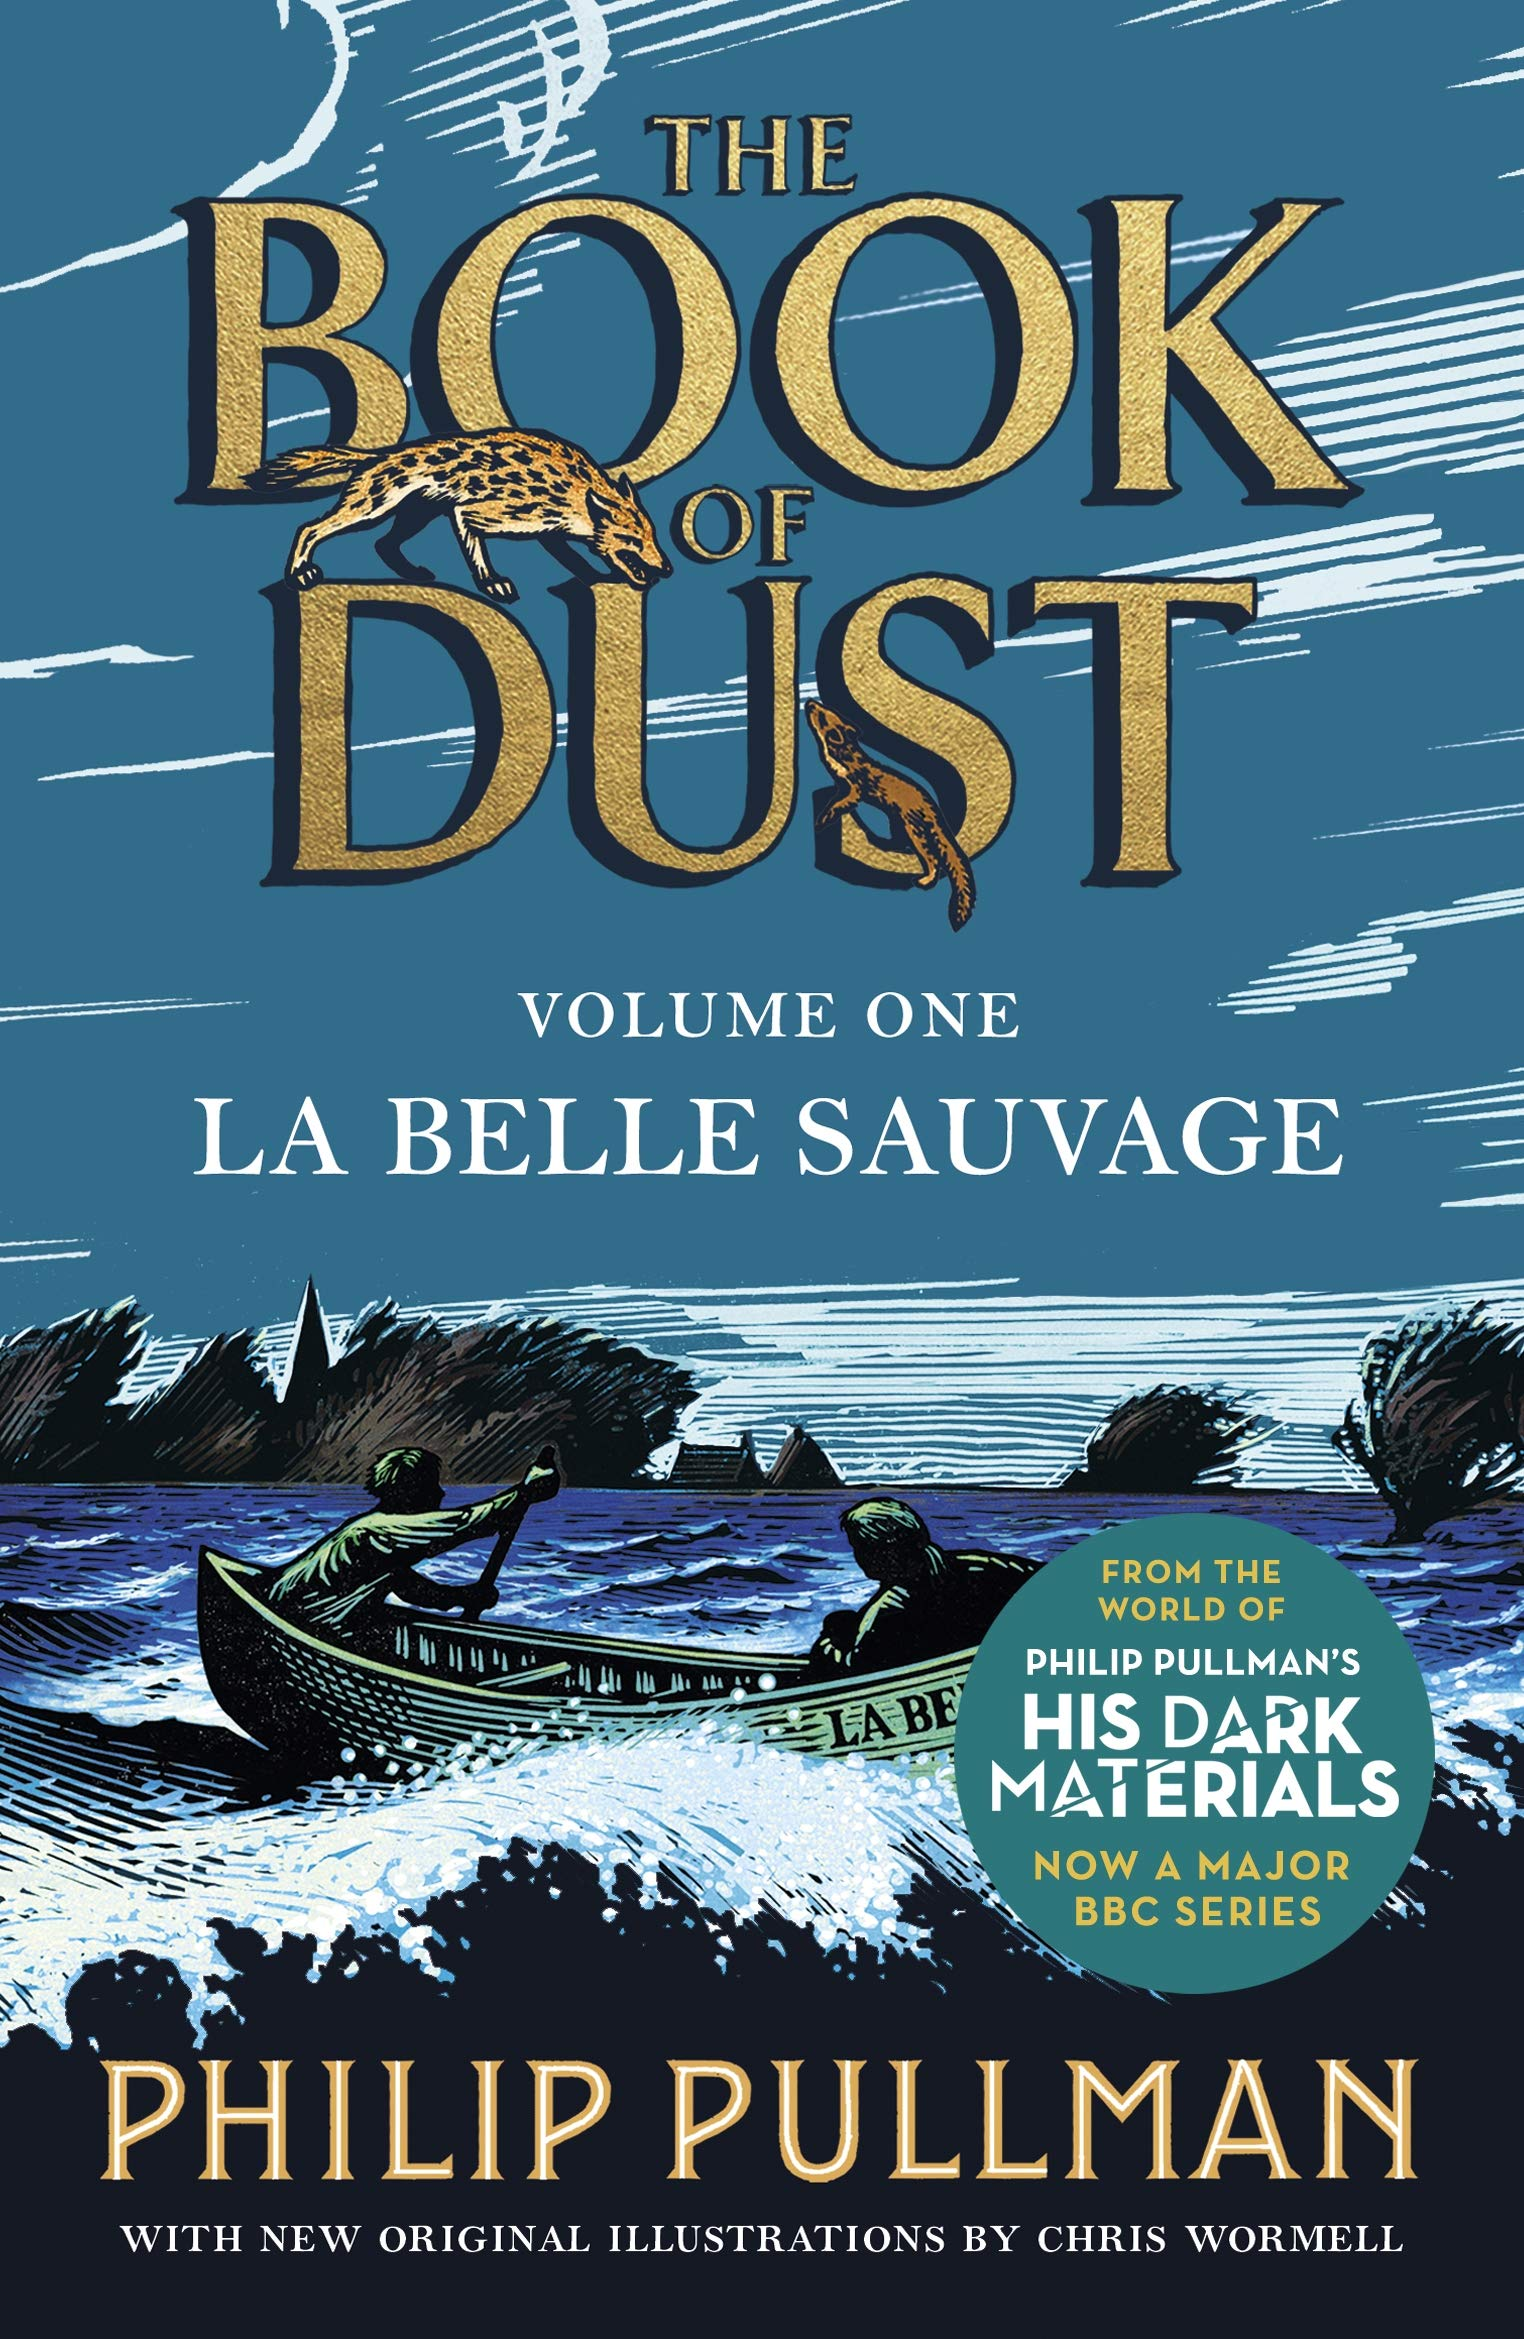 La Belle Sauvage  The Book Of Dust Volume One  Book Of Dust 1 Band 1